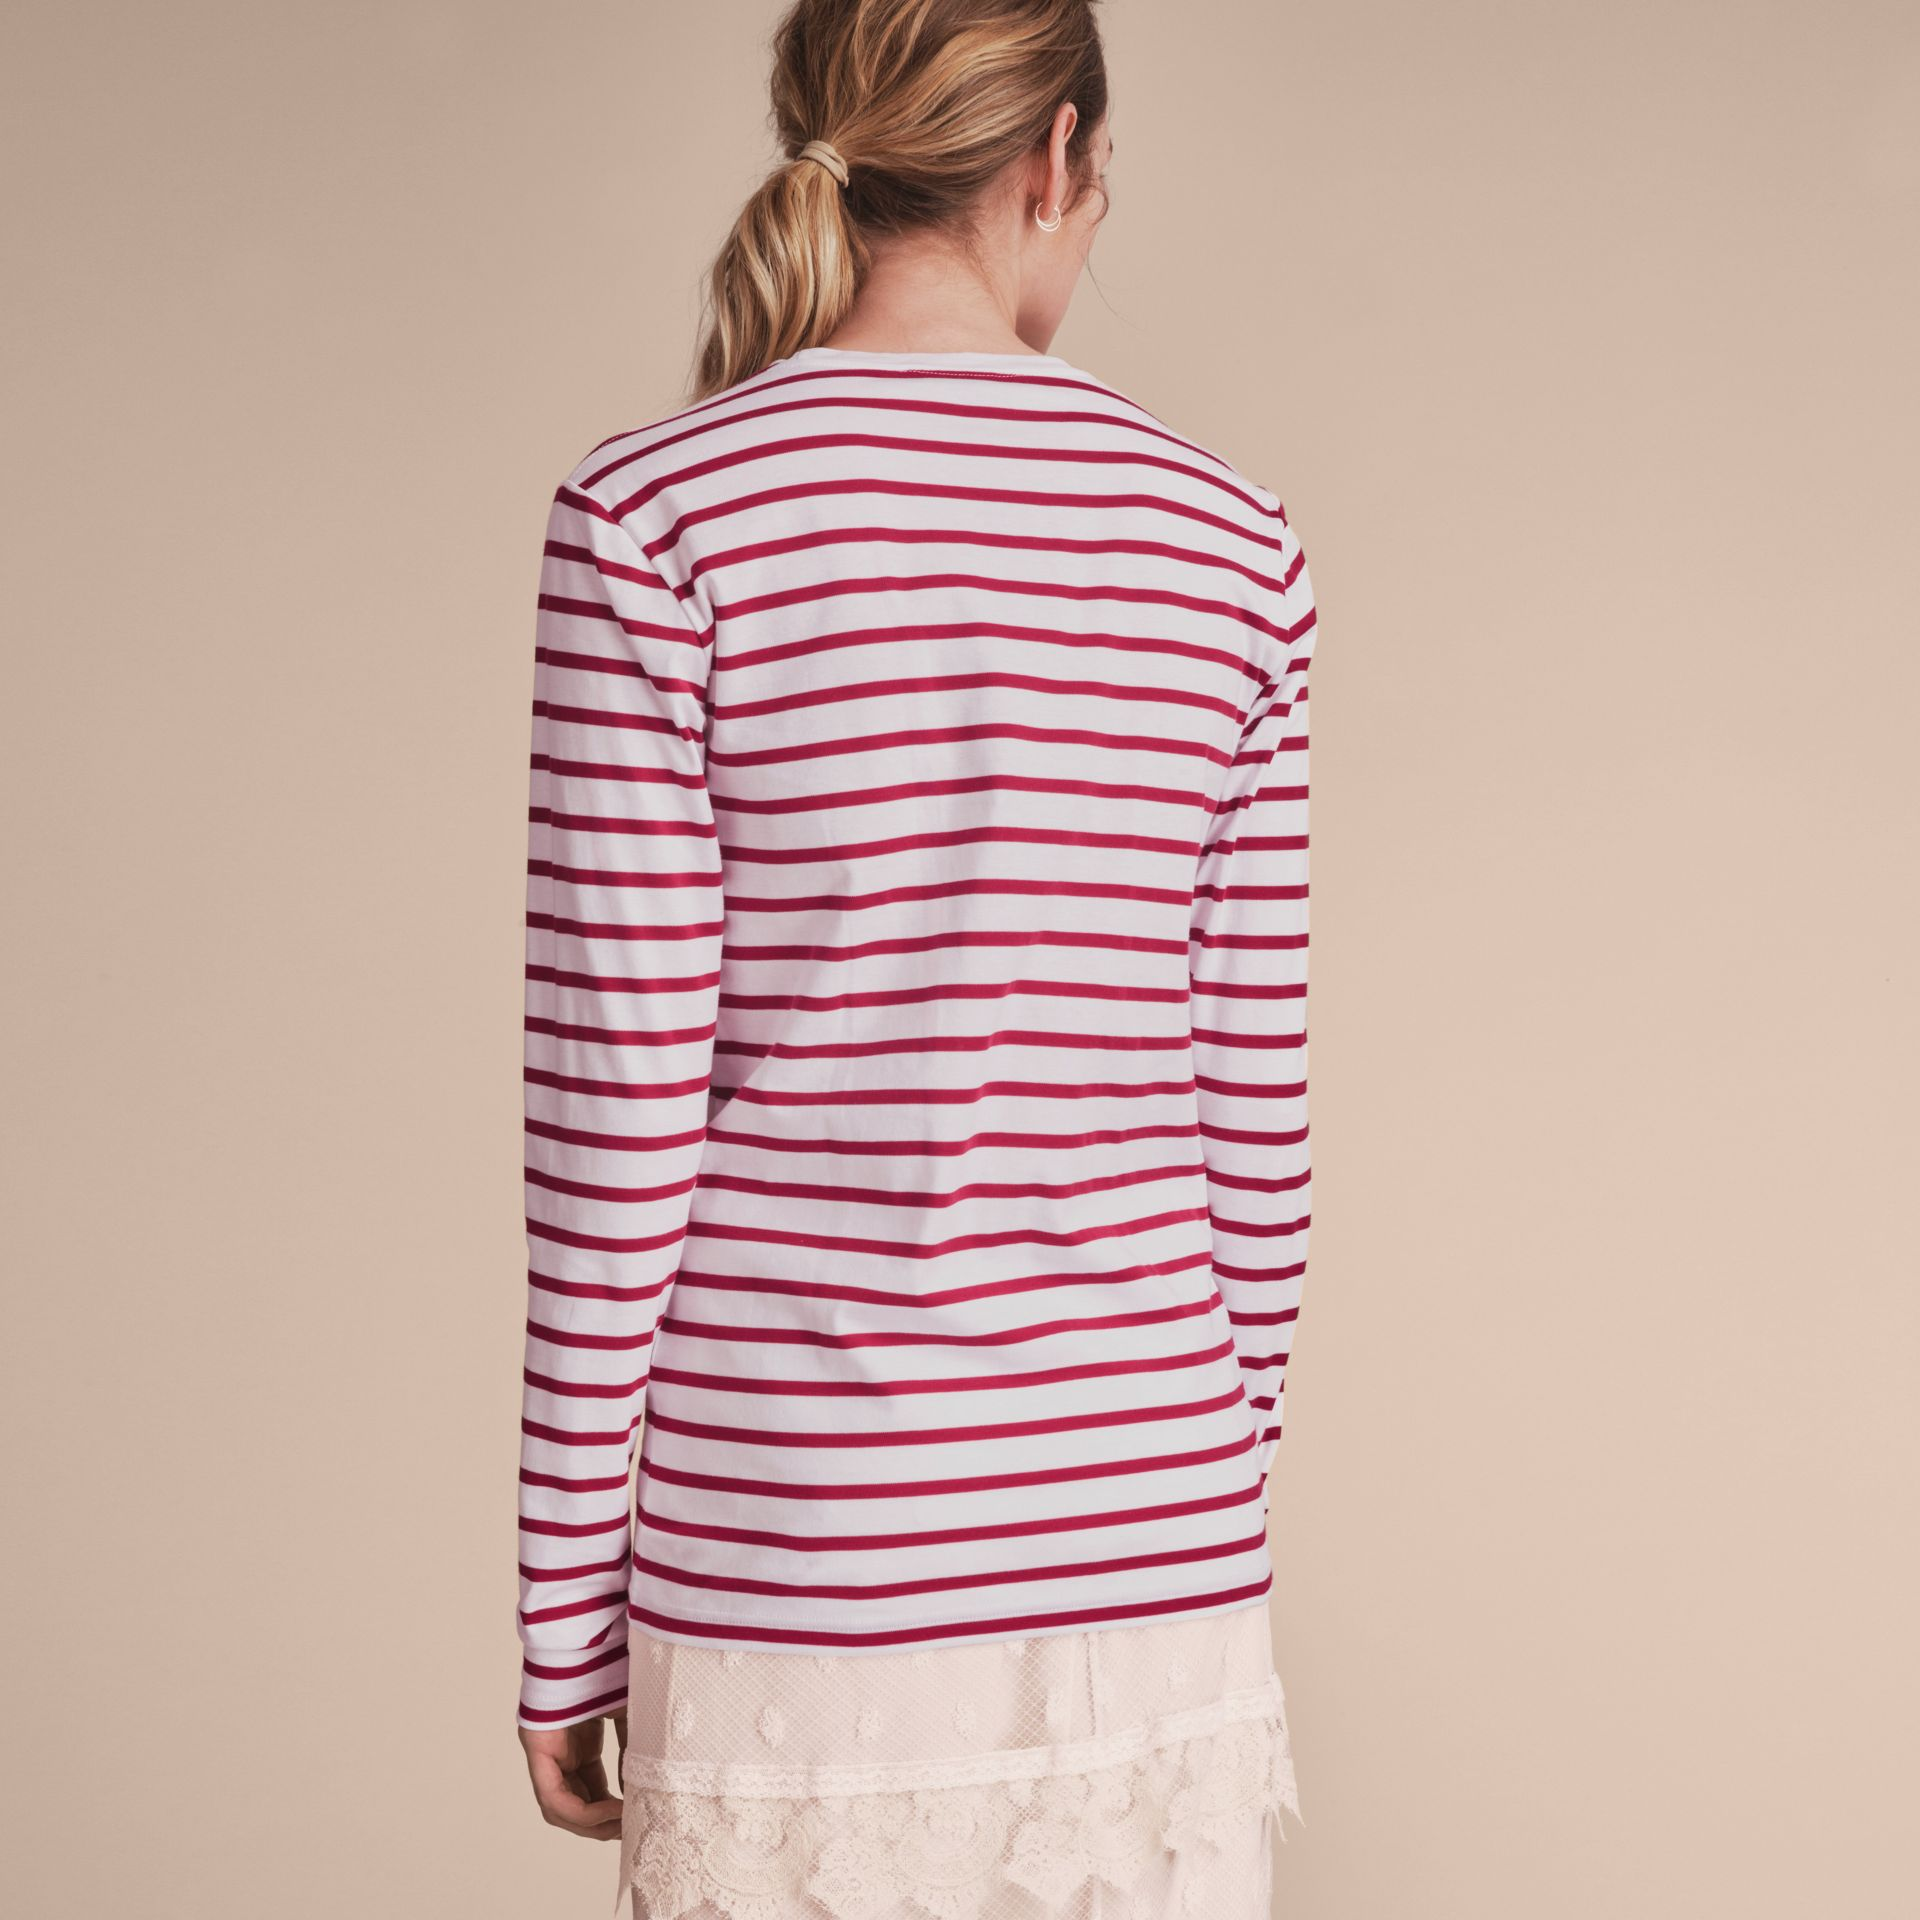 Unisex Pallas Heads Motif Breton Stripe Cotton Top - Women | Burberry - gallery image 5